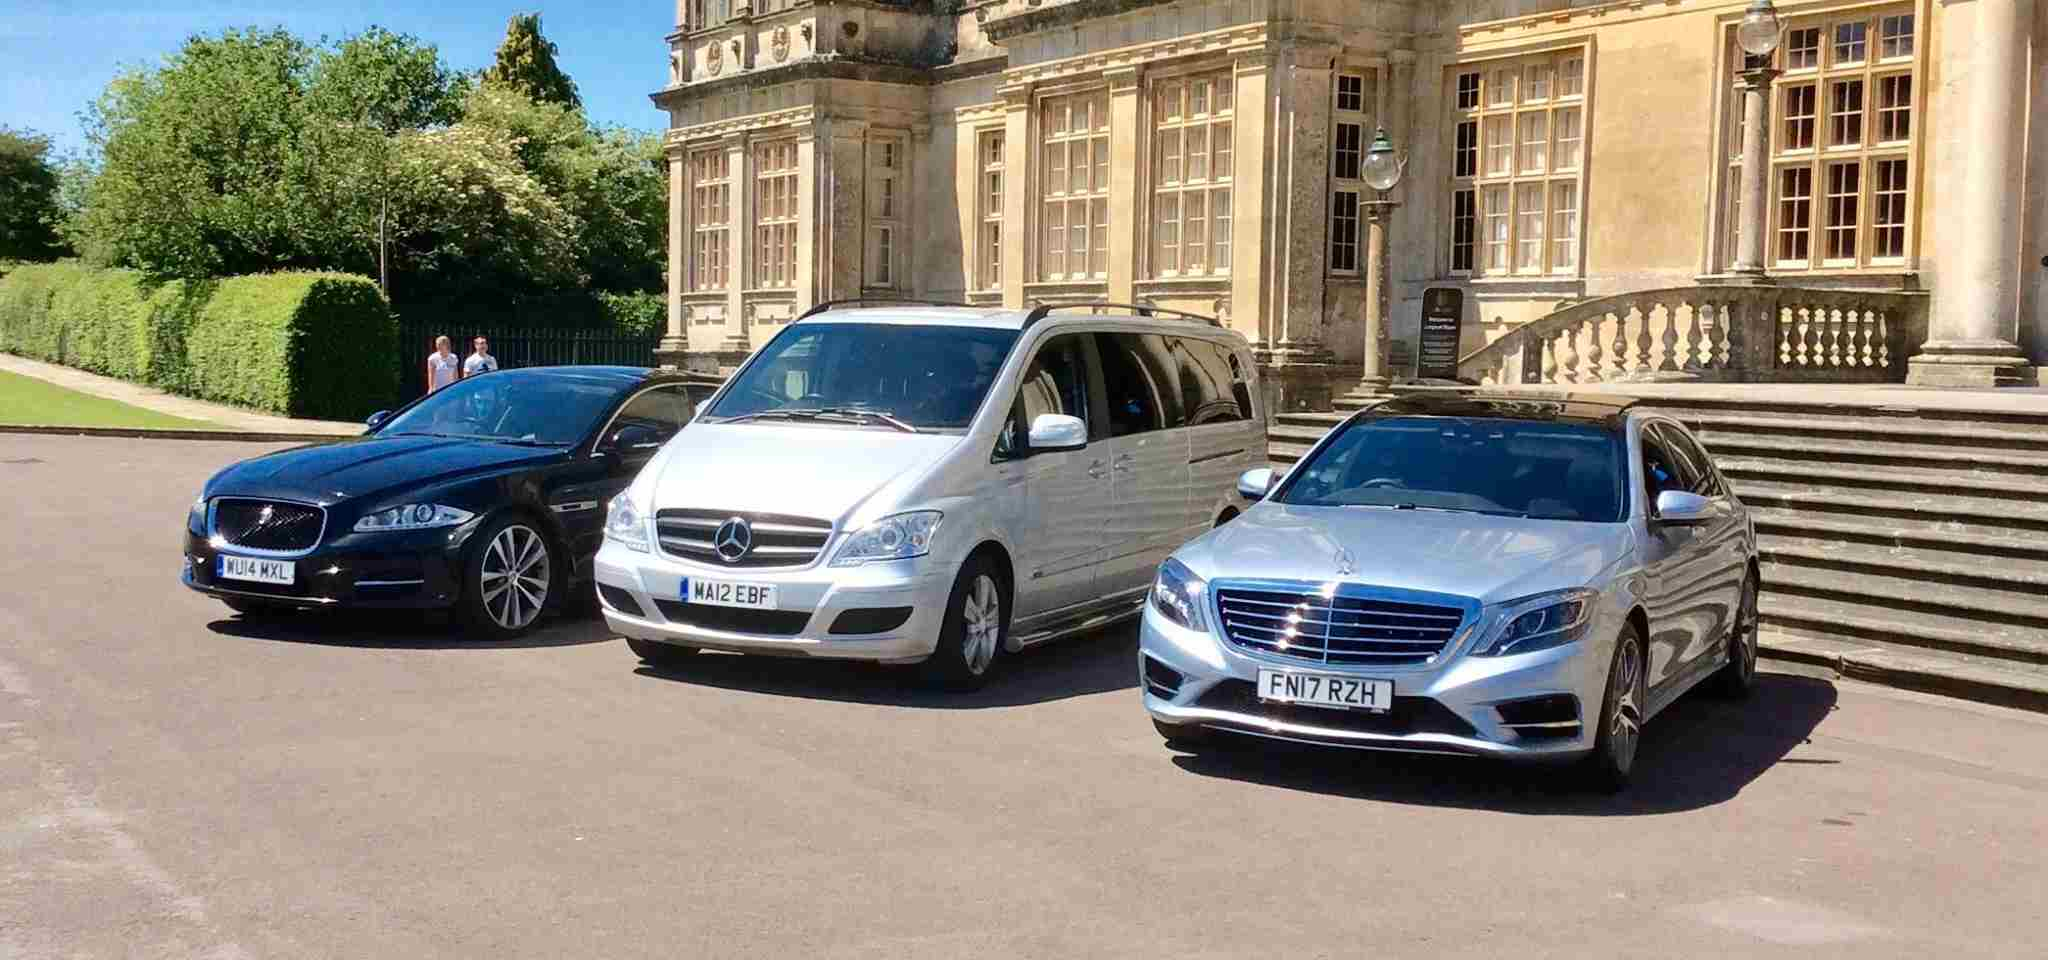 Executive Cars Parked Outside Building